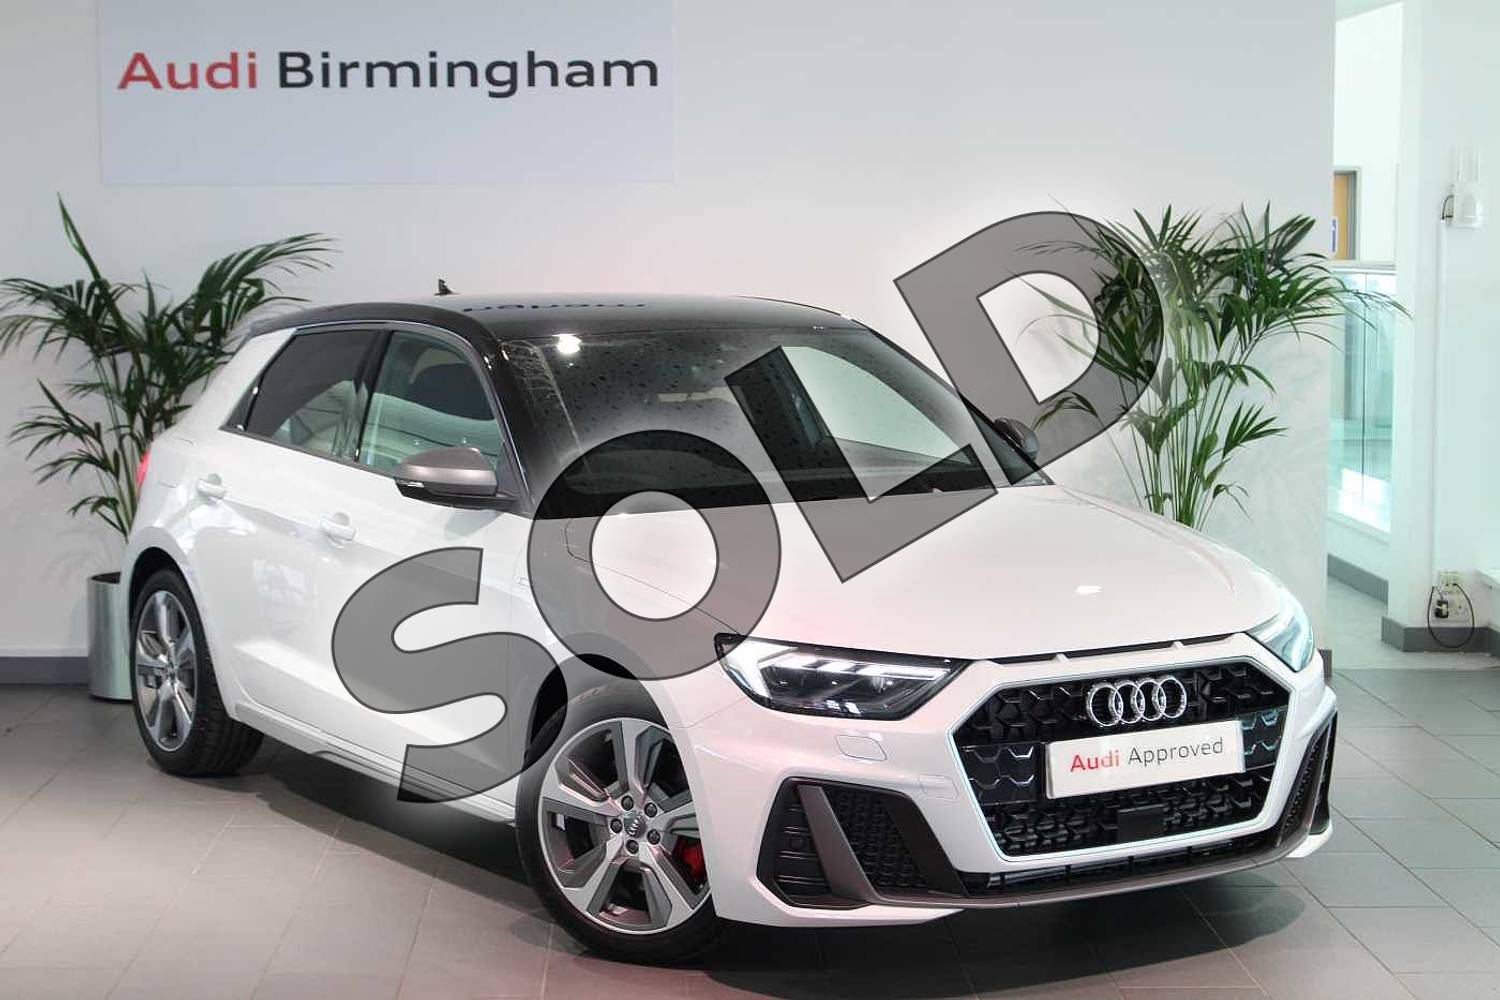 2020 Audi A1 Sportback 40 TFSI S Line Competition 5dr S Tronic in Glacier White Metallic at Birmingham Audi